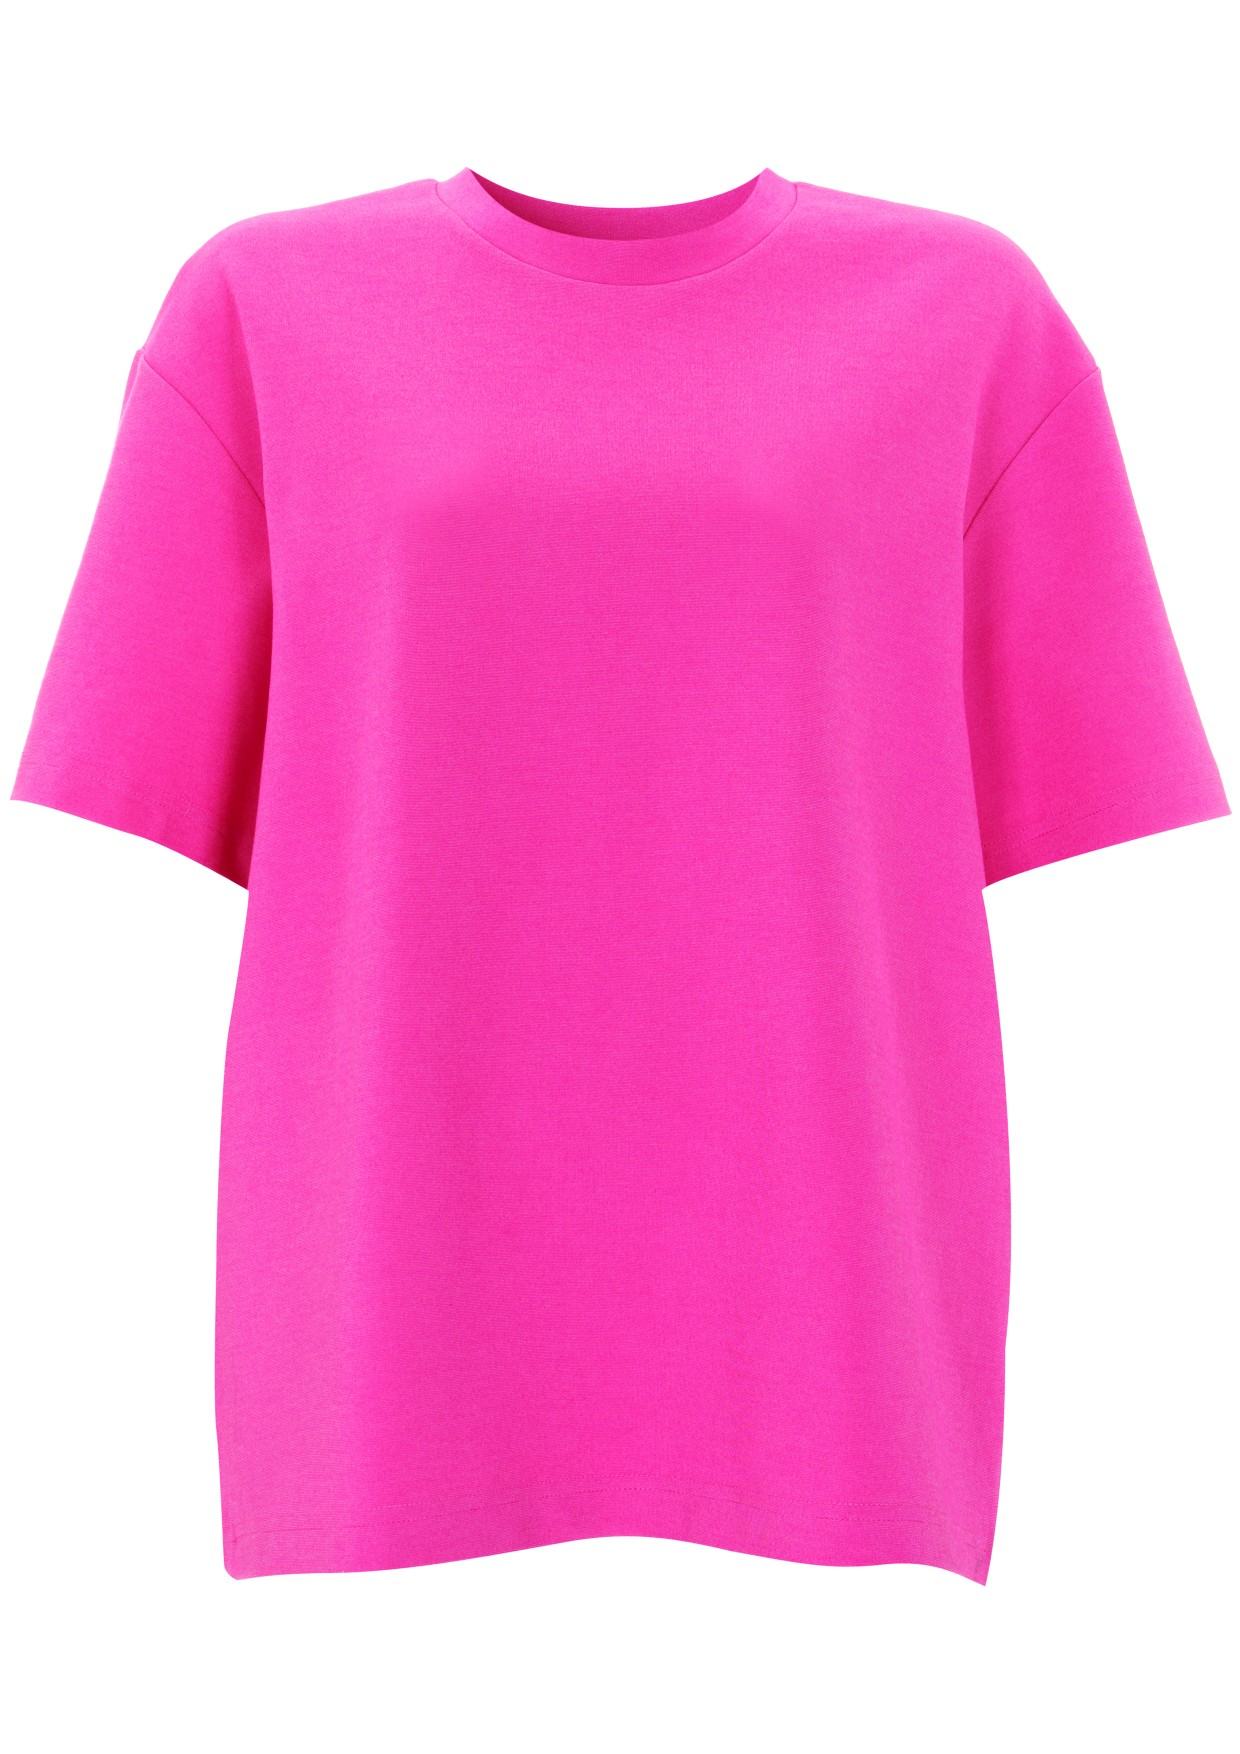 Pink T Shirt - Greek T Shirts